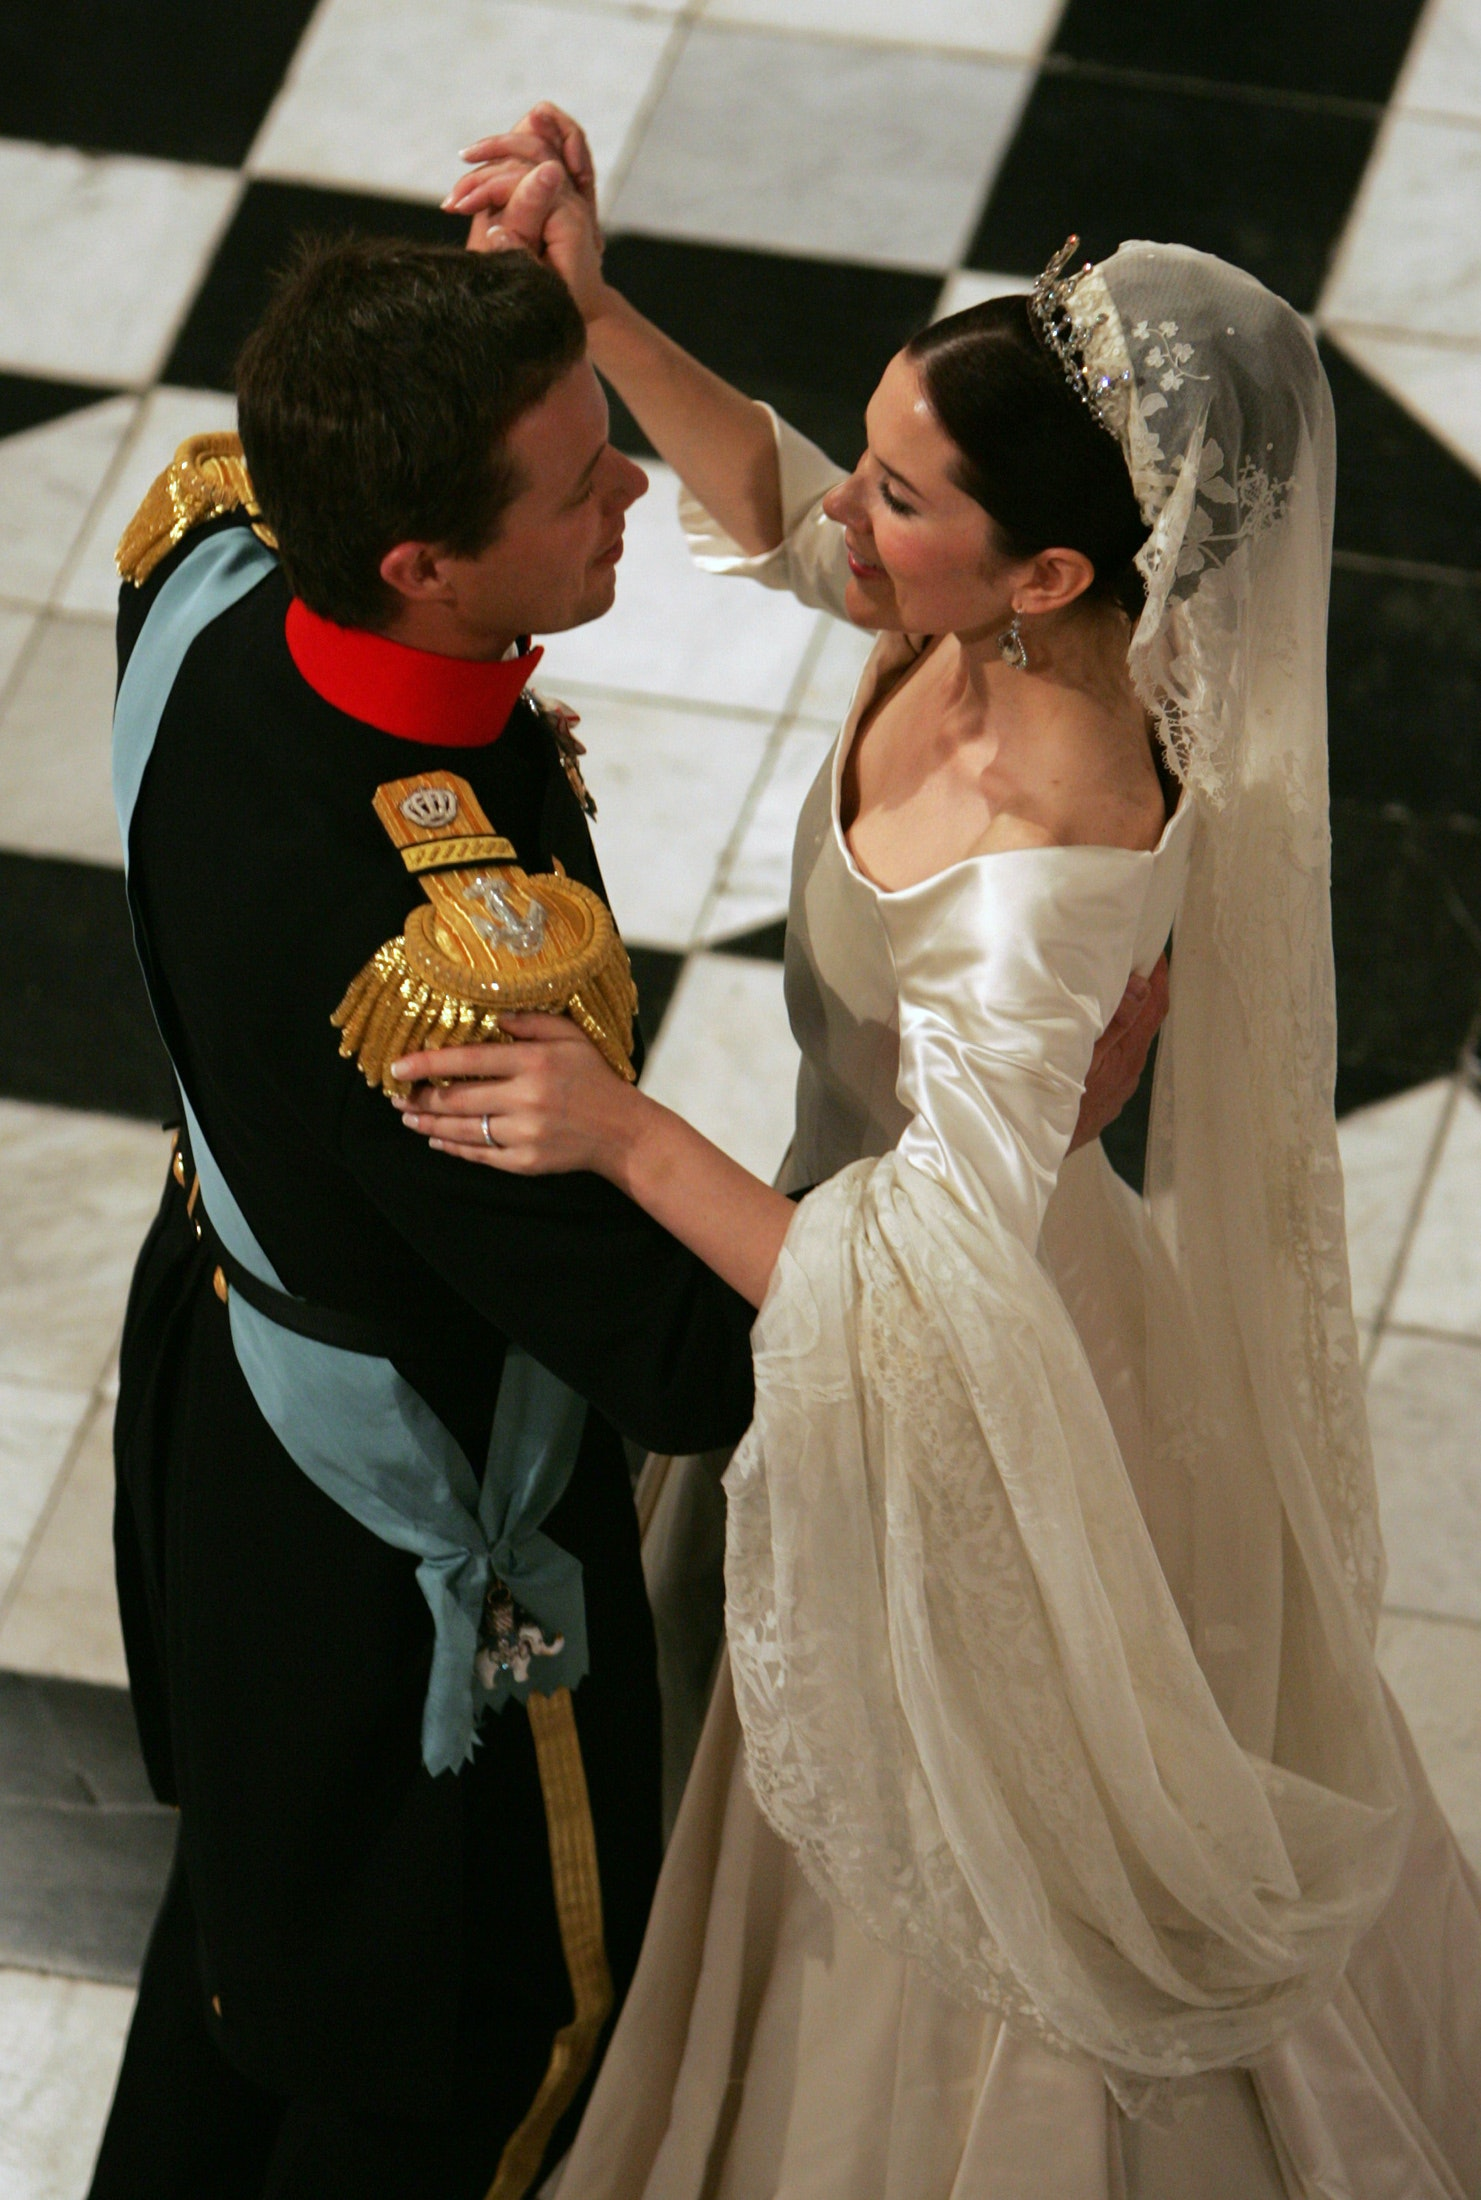 Prince Frederik and Princess Mary.